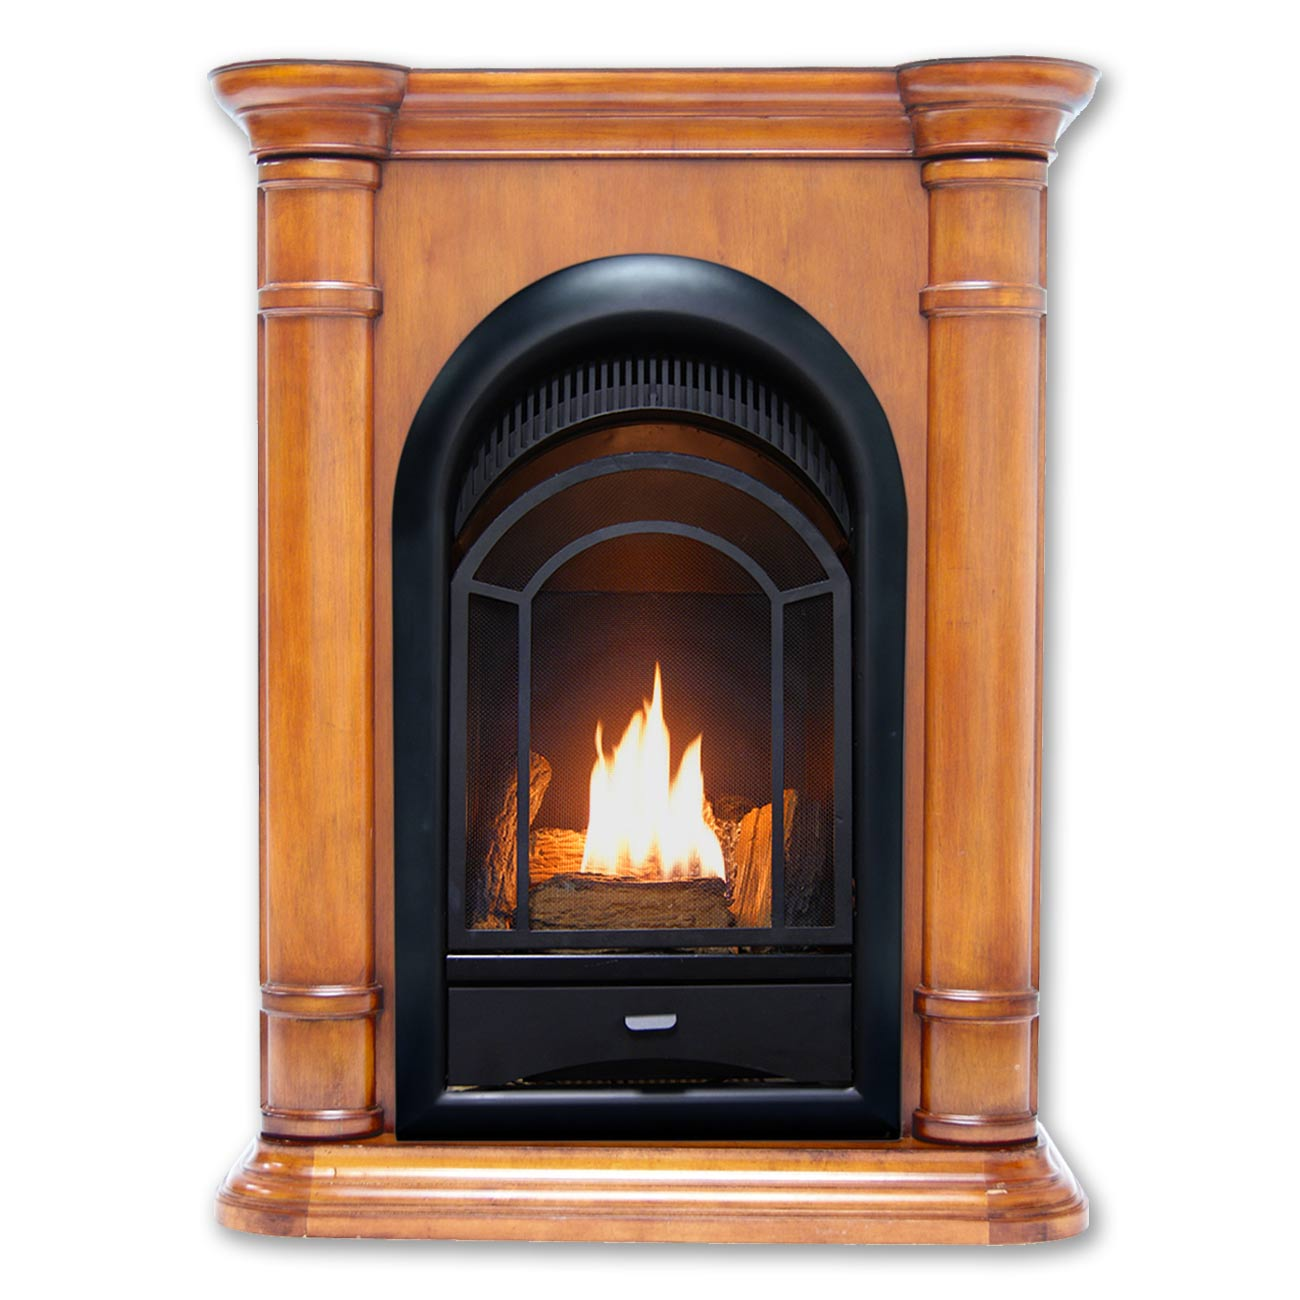 Dual Fuel Ventless Fireplace Corner Combo In Apple Spice Finish U2013 15,000 BTU